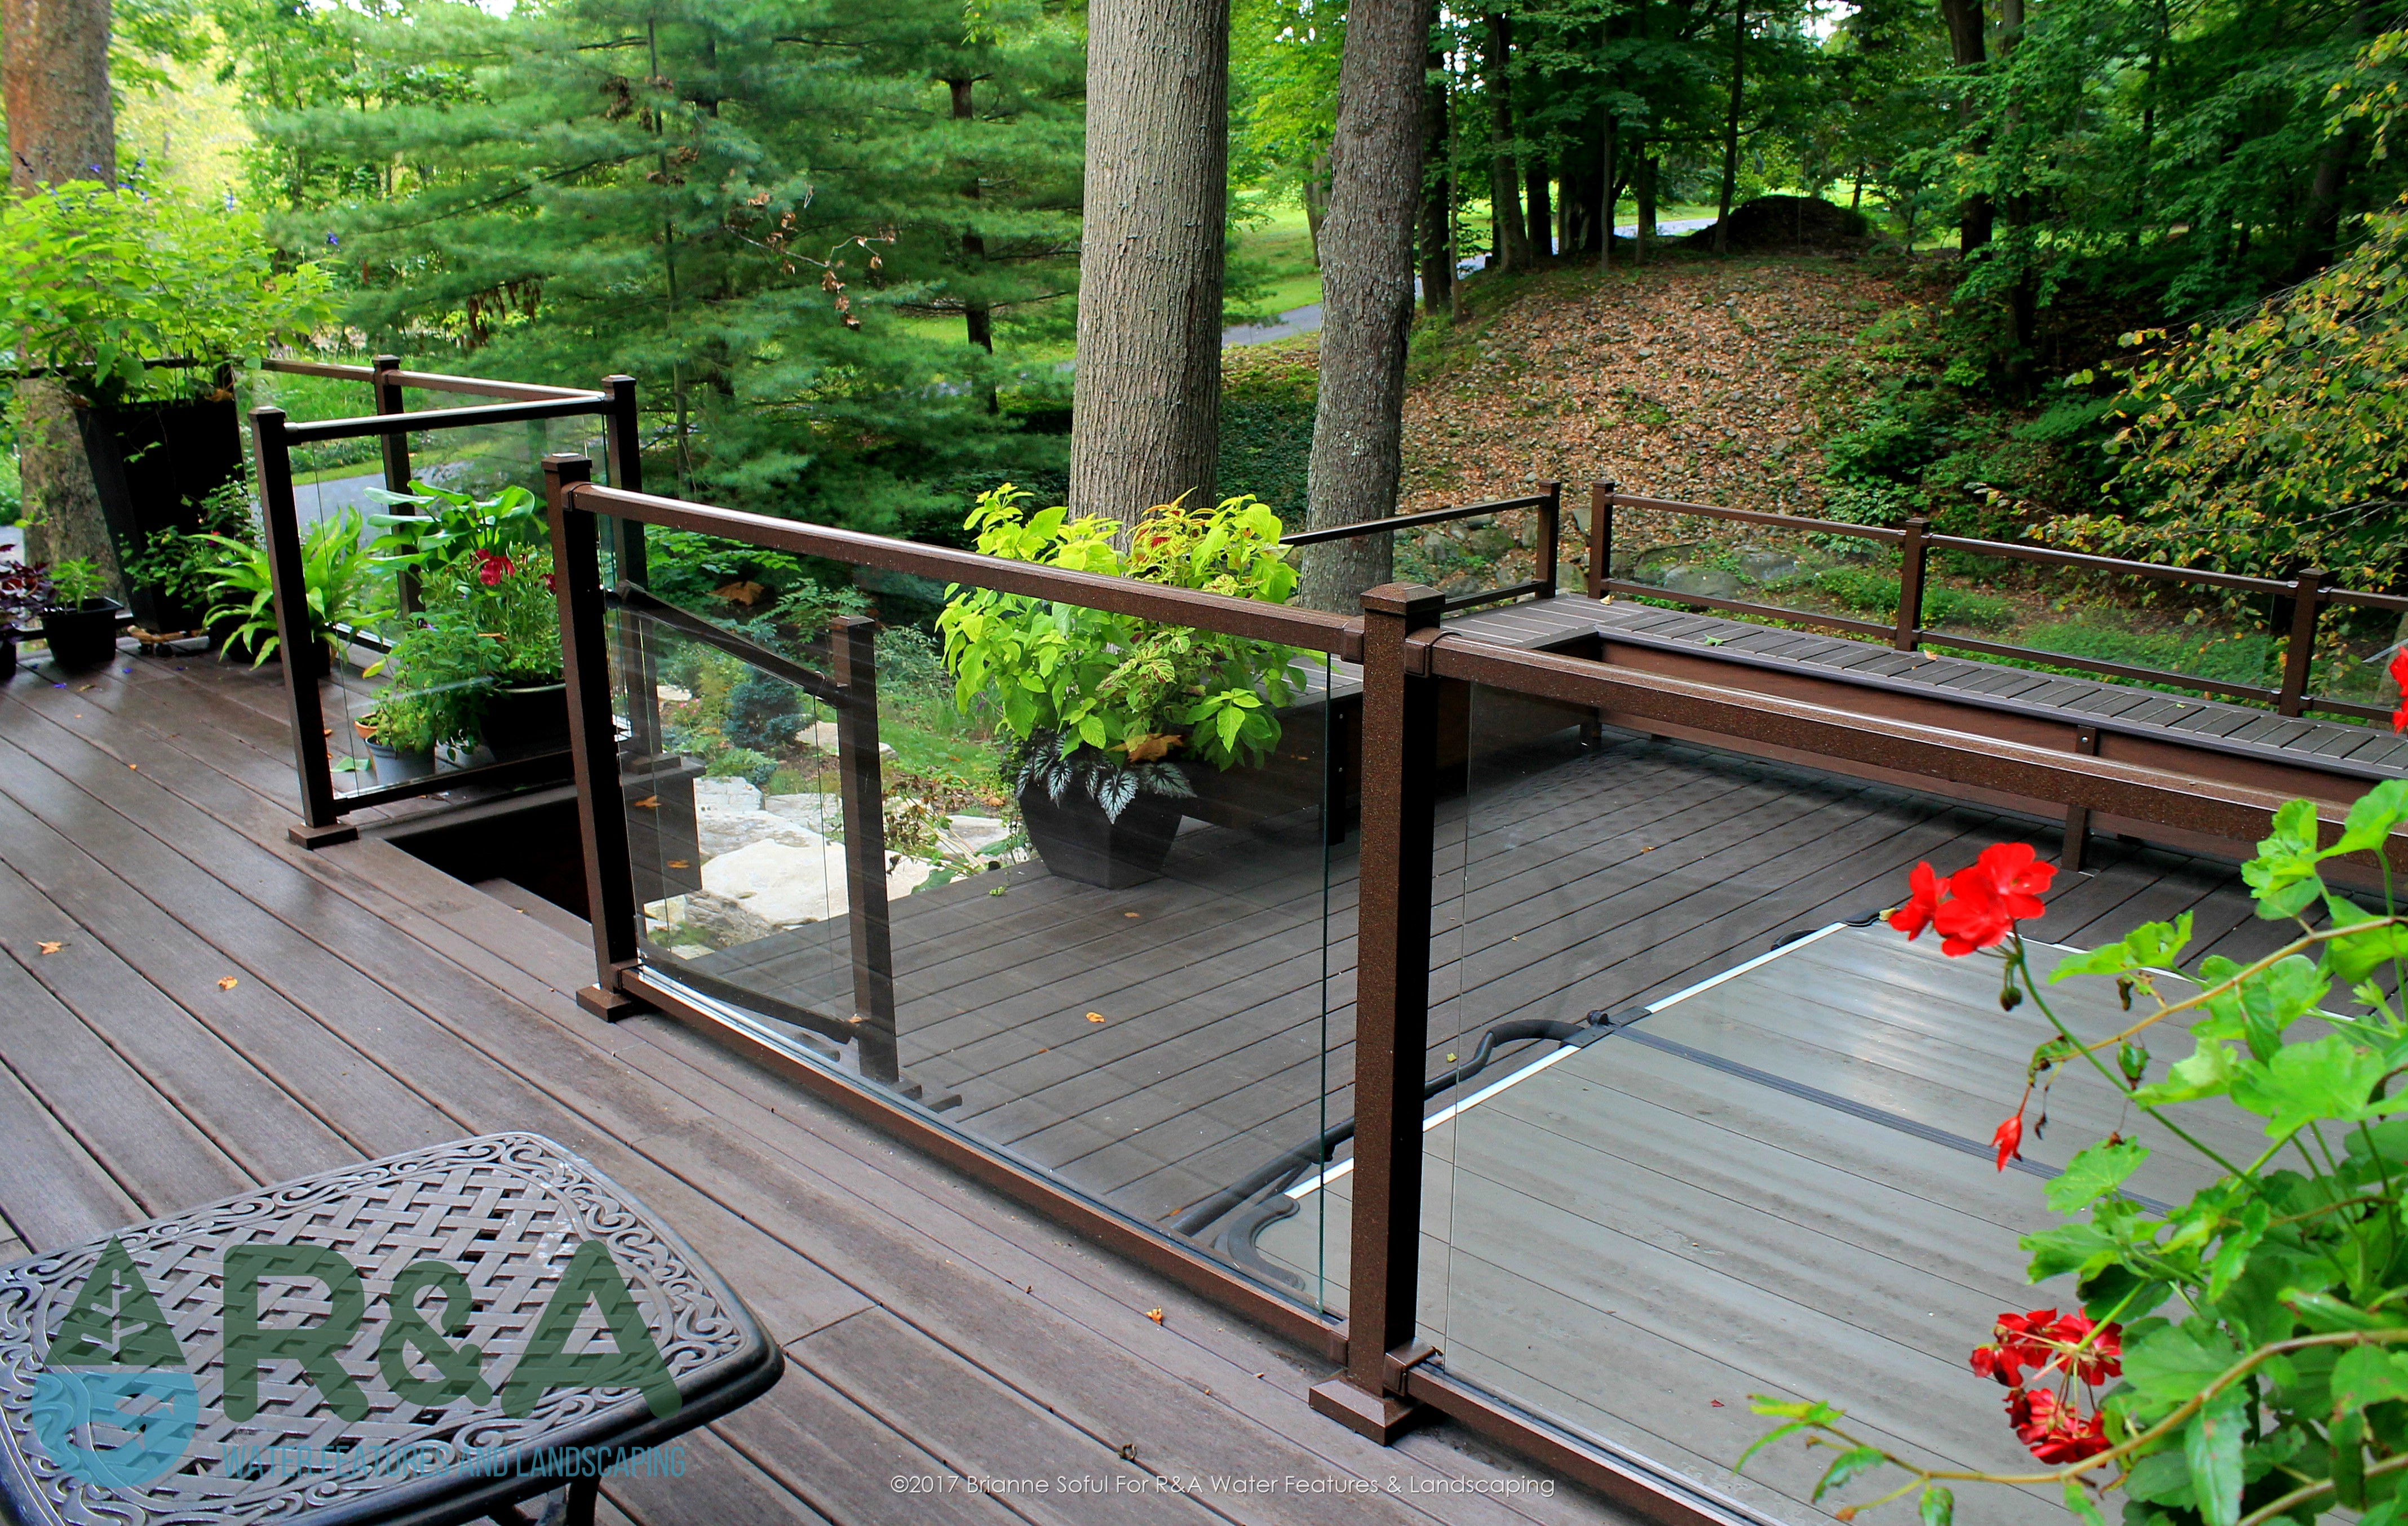 Eau Claire Landscaping Retaining Wall Steps Deck (6)